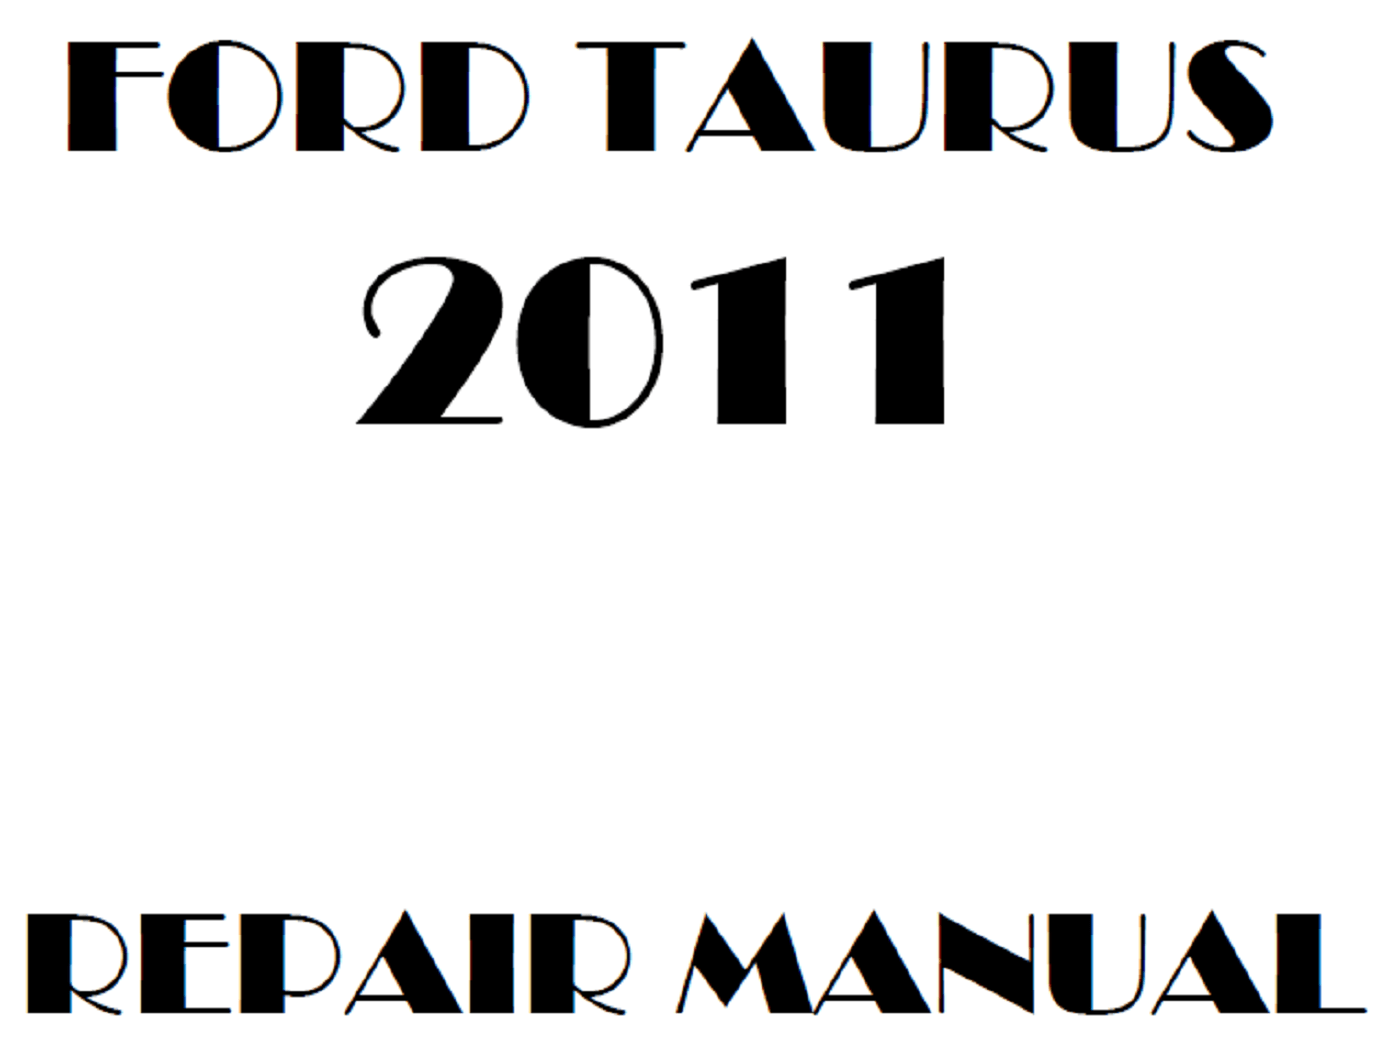 2011 Ford Taurus repair manual